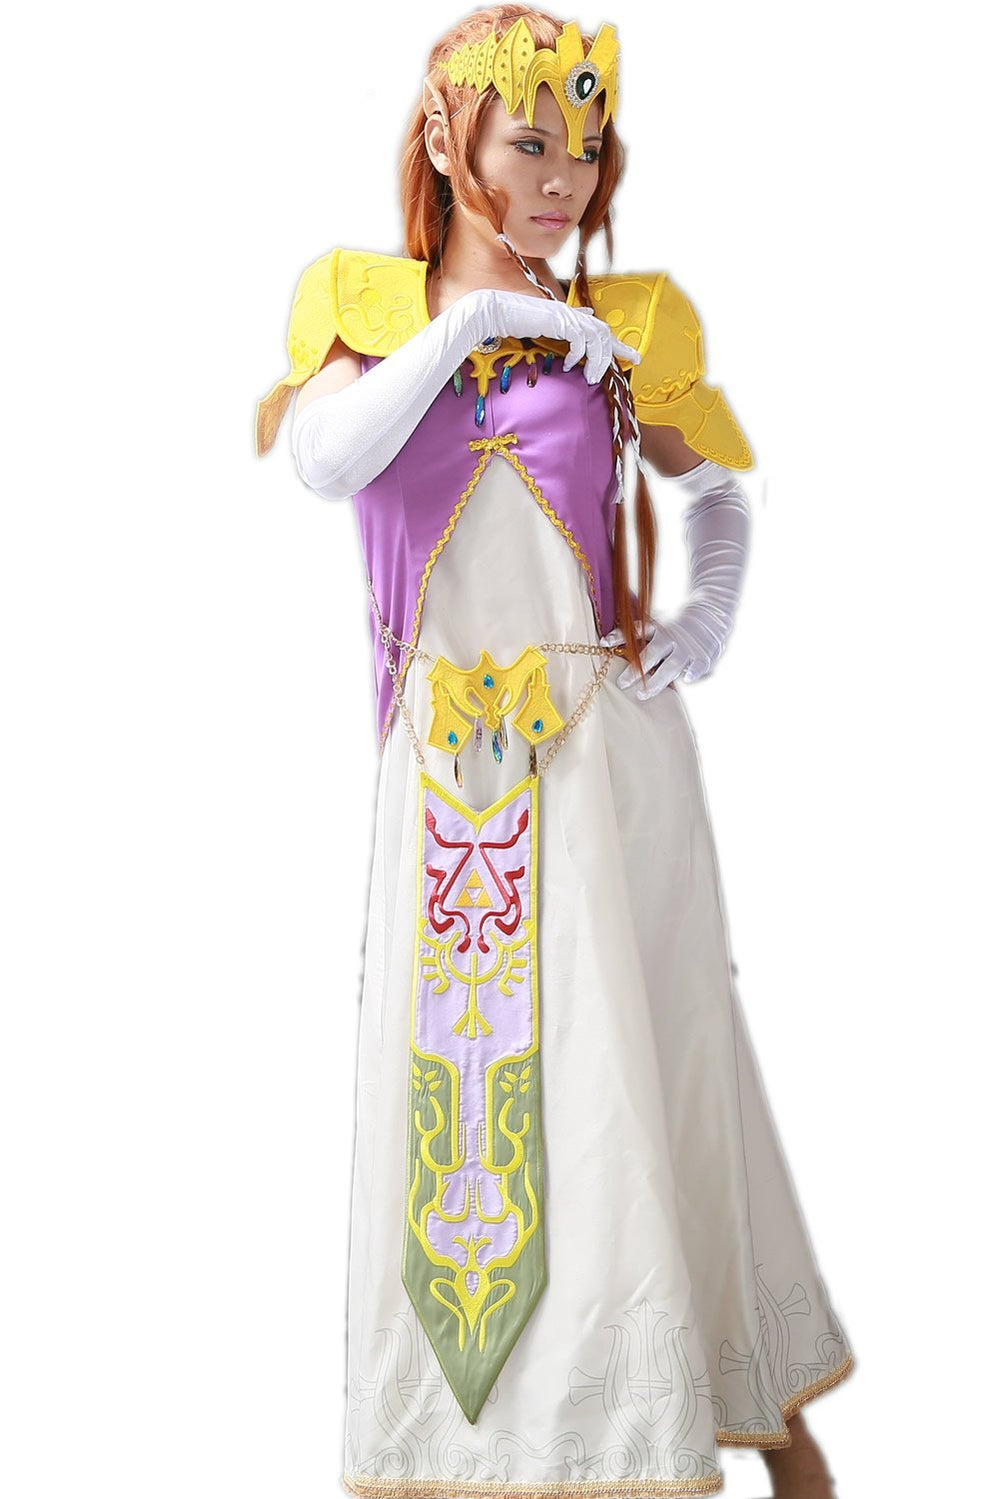 xcoser-de,Princess Zelda Cosplay The Legend of Zelda Costume Designed by Xcoser,Game Cosplay,Themes